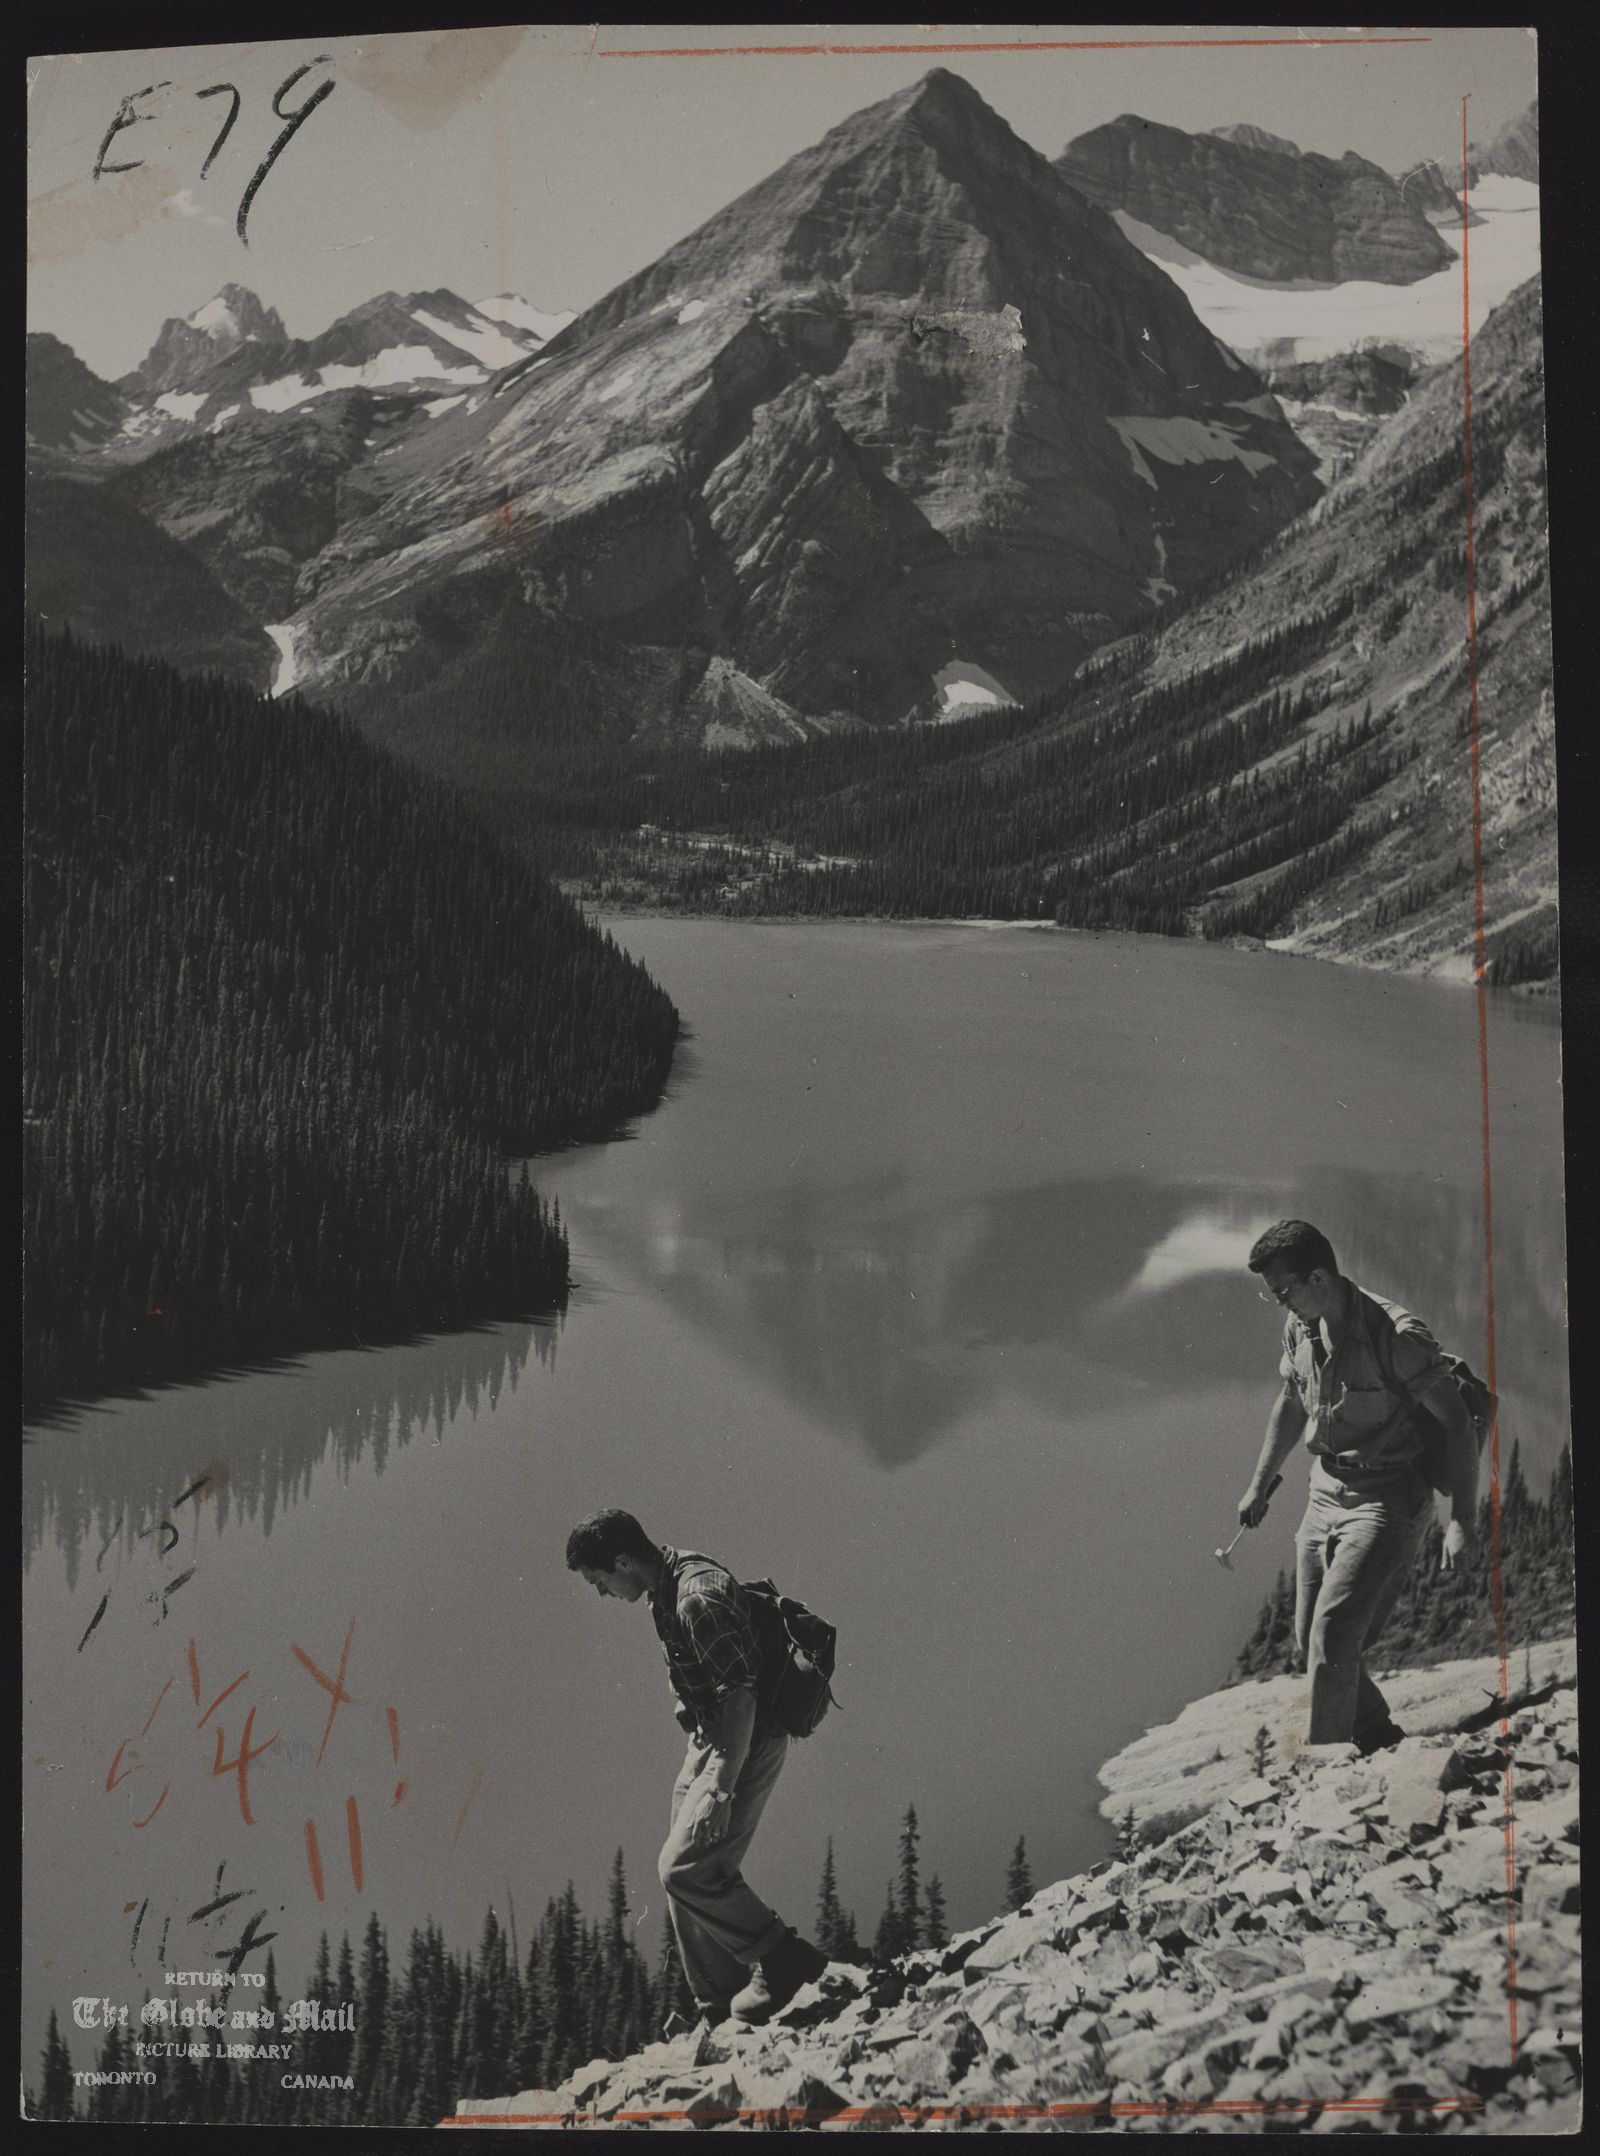 The notes transcribed from the back of this photograph are as follows: The Big, Broad Land. Geologists scale Rockies for clues to minerals, oil or gas deposits. Originally published July 1, 1959.